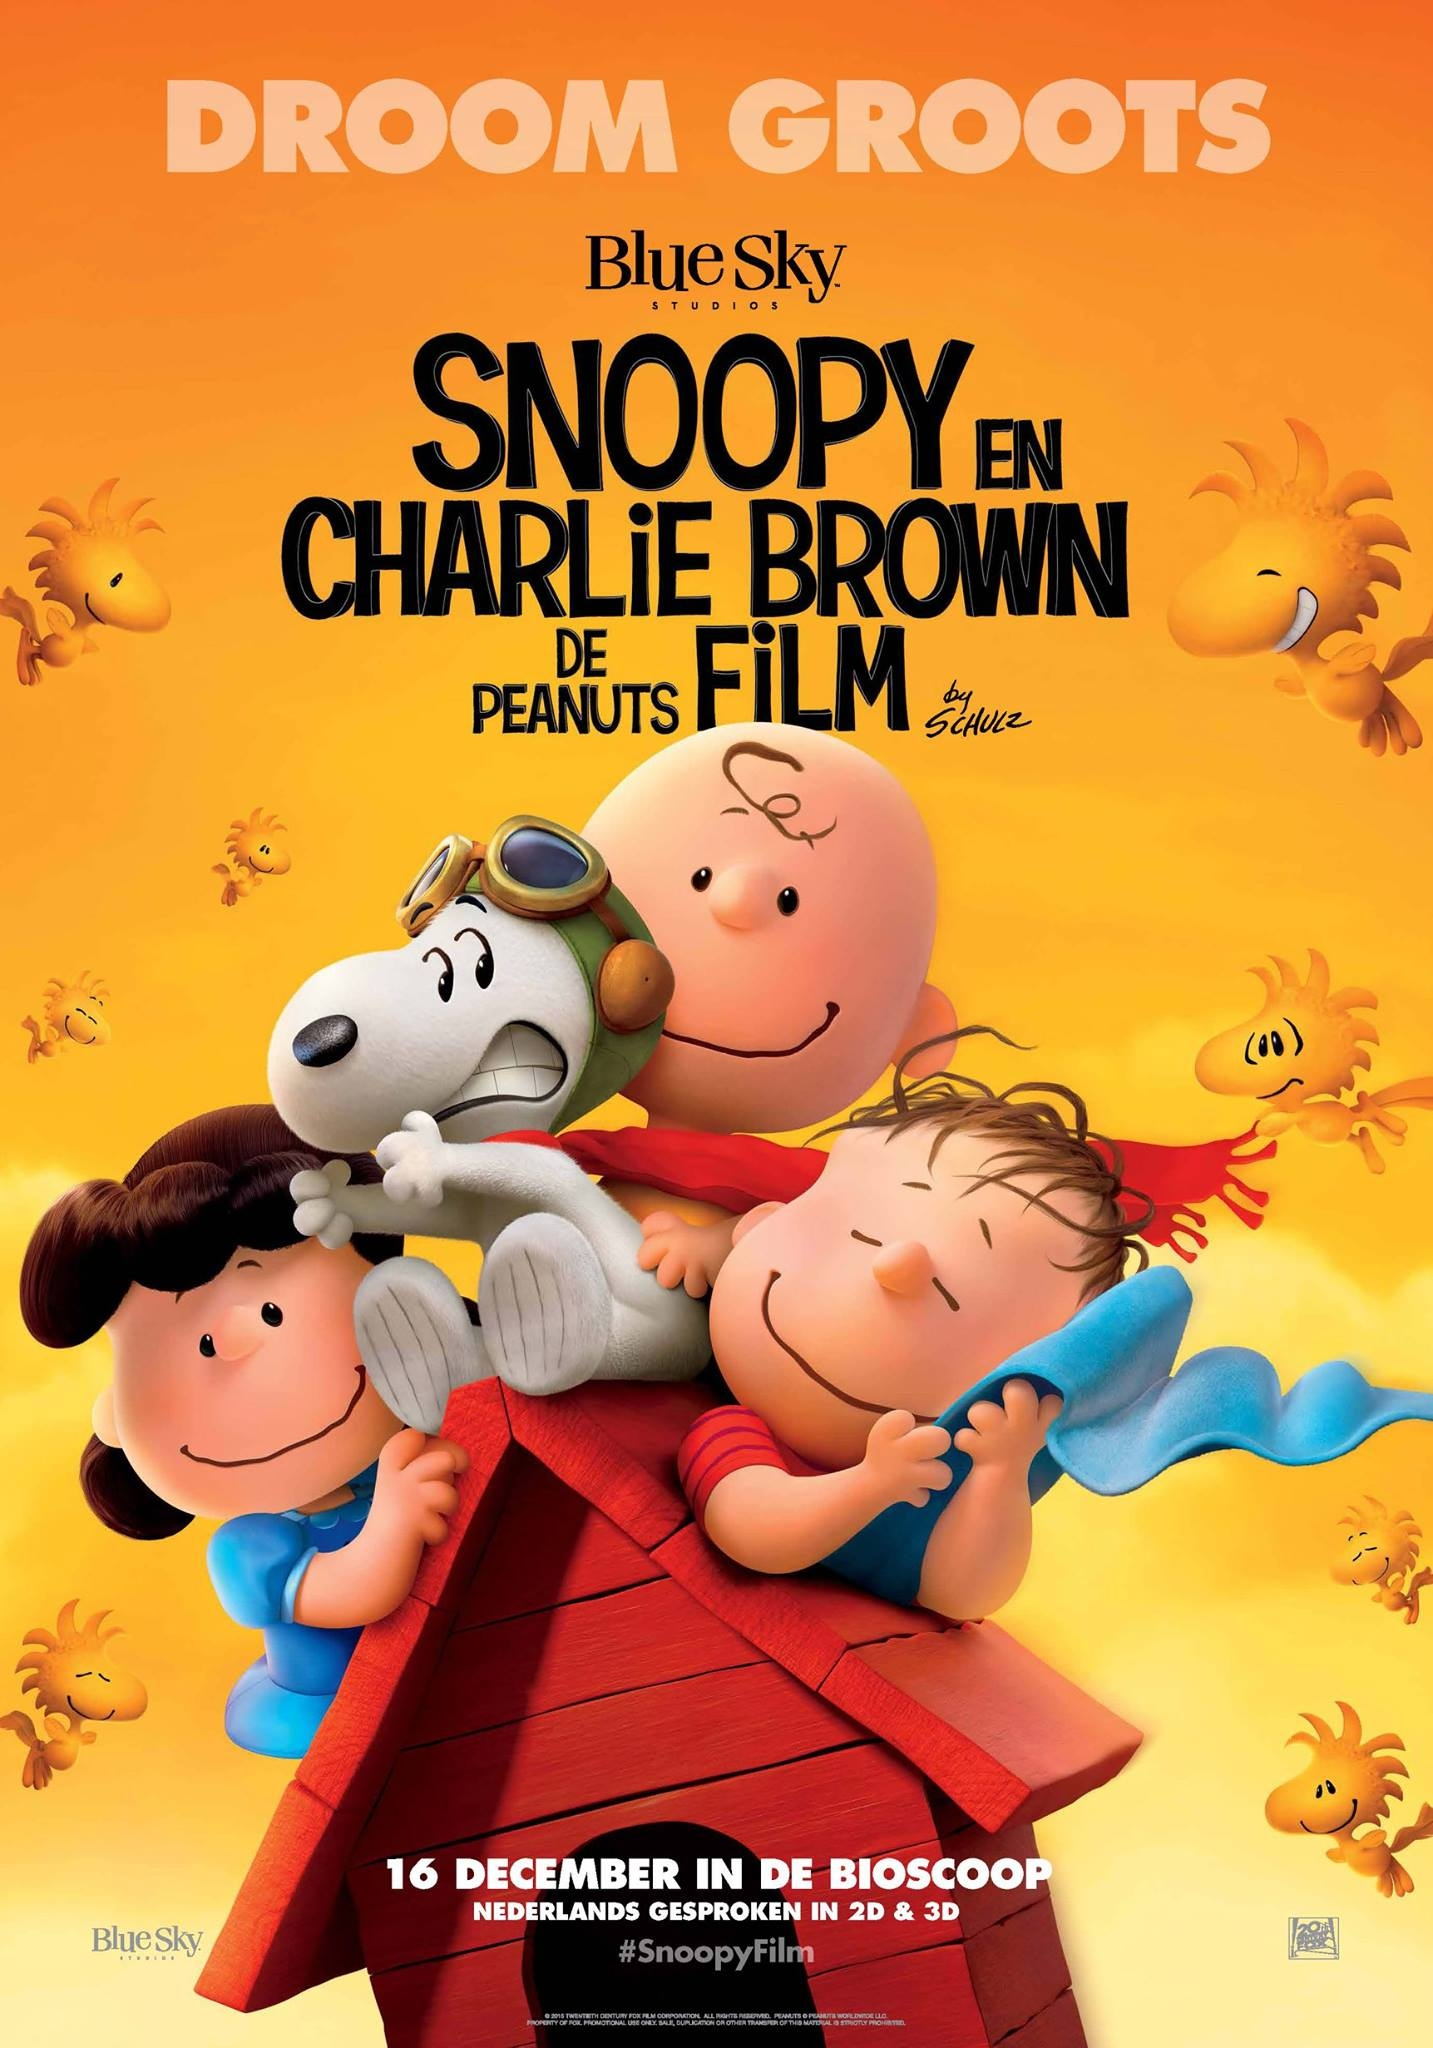 Snoopy-and-Charlie-Brown-The-Peanuts-Movie_poster_goldposter_com_22